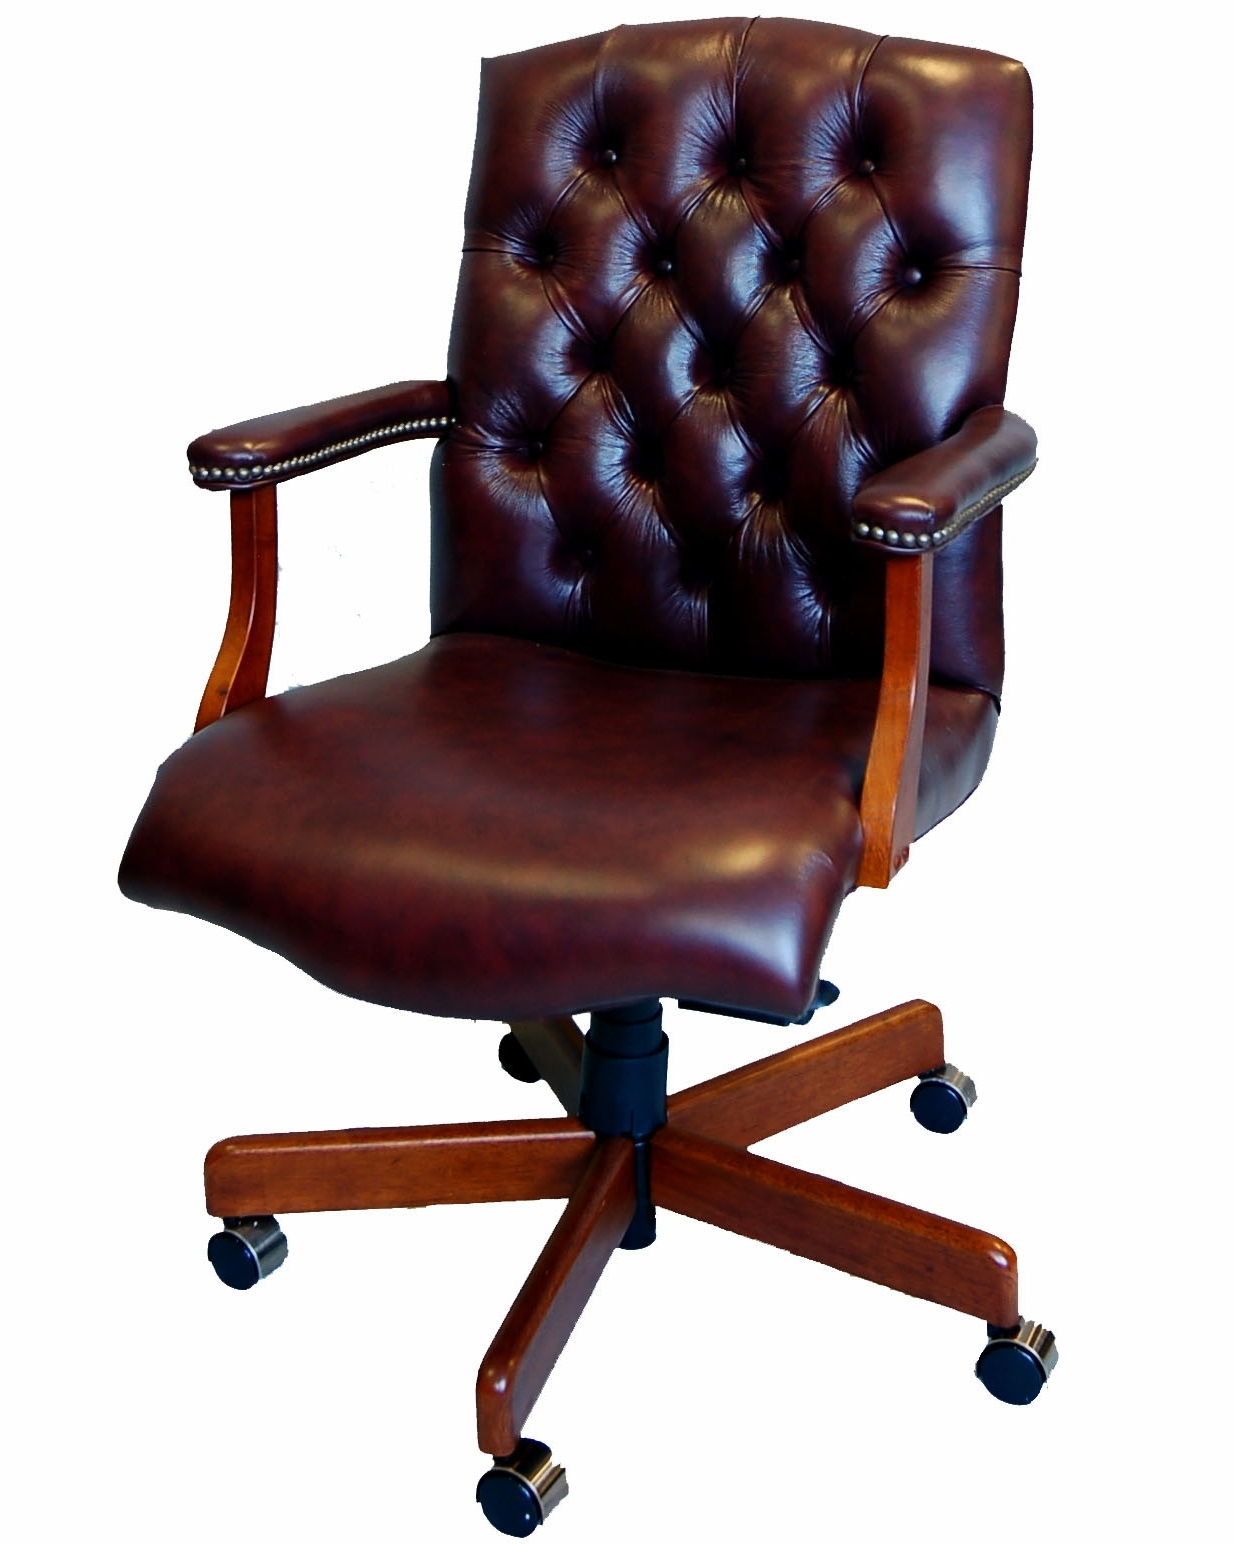 Brown Leather Executive Desk Chair • Desk Chair Pertaining To Newest Leather Executive Office Chairs (View 13 of 20)